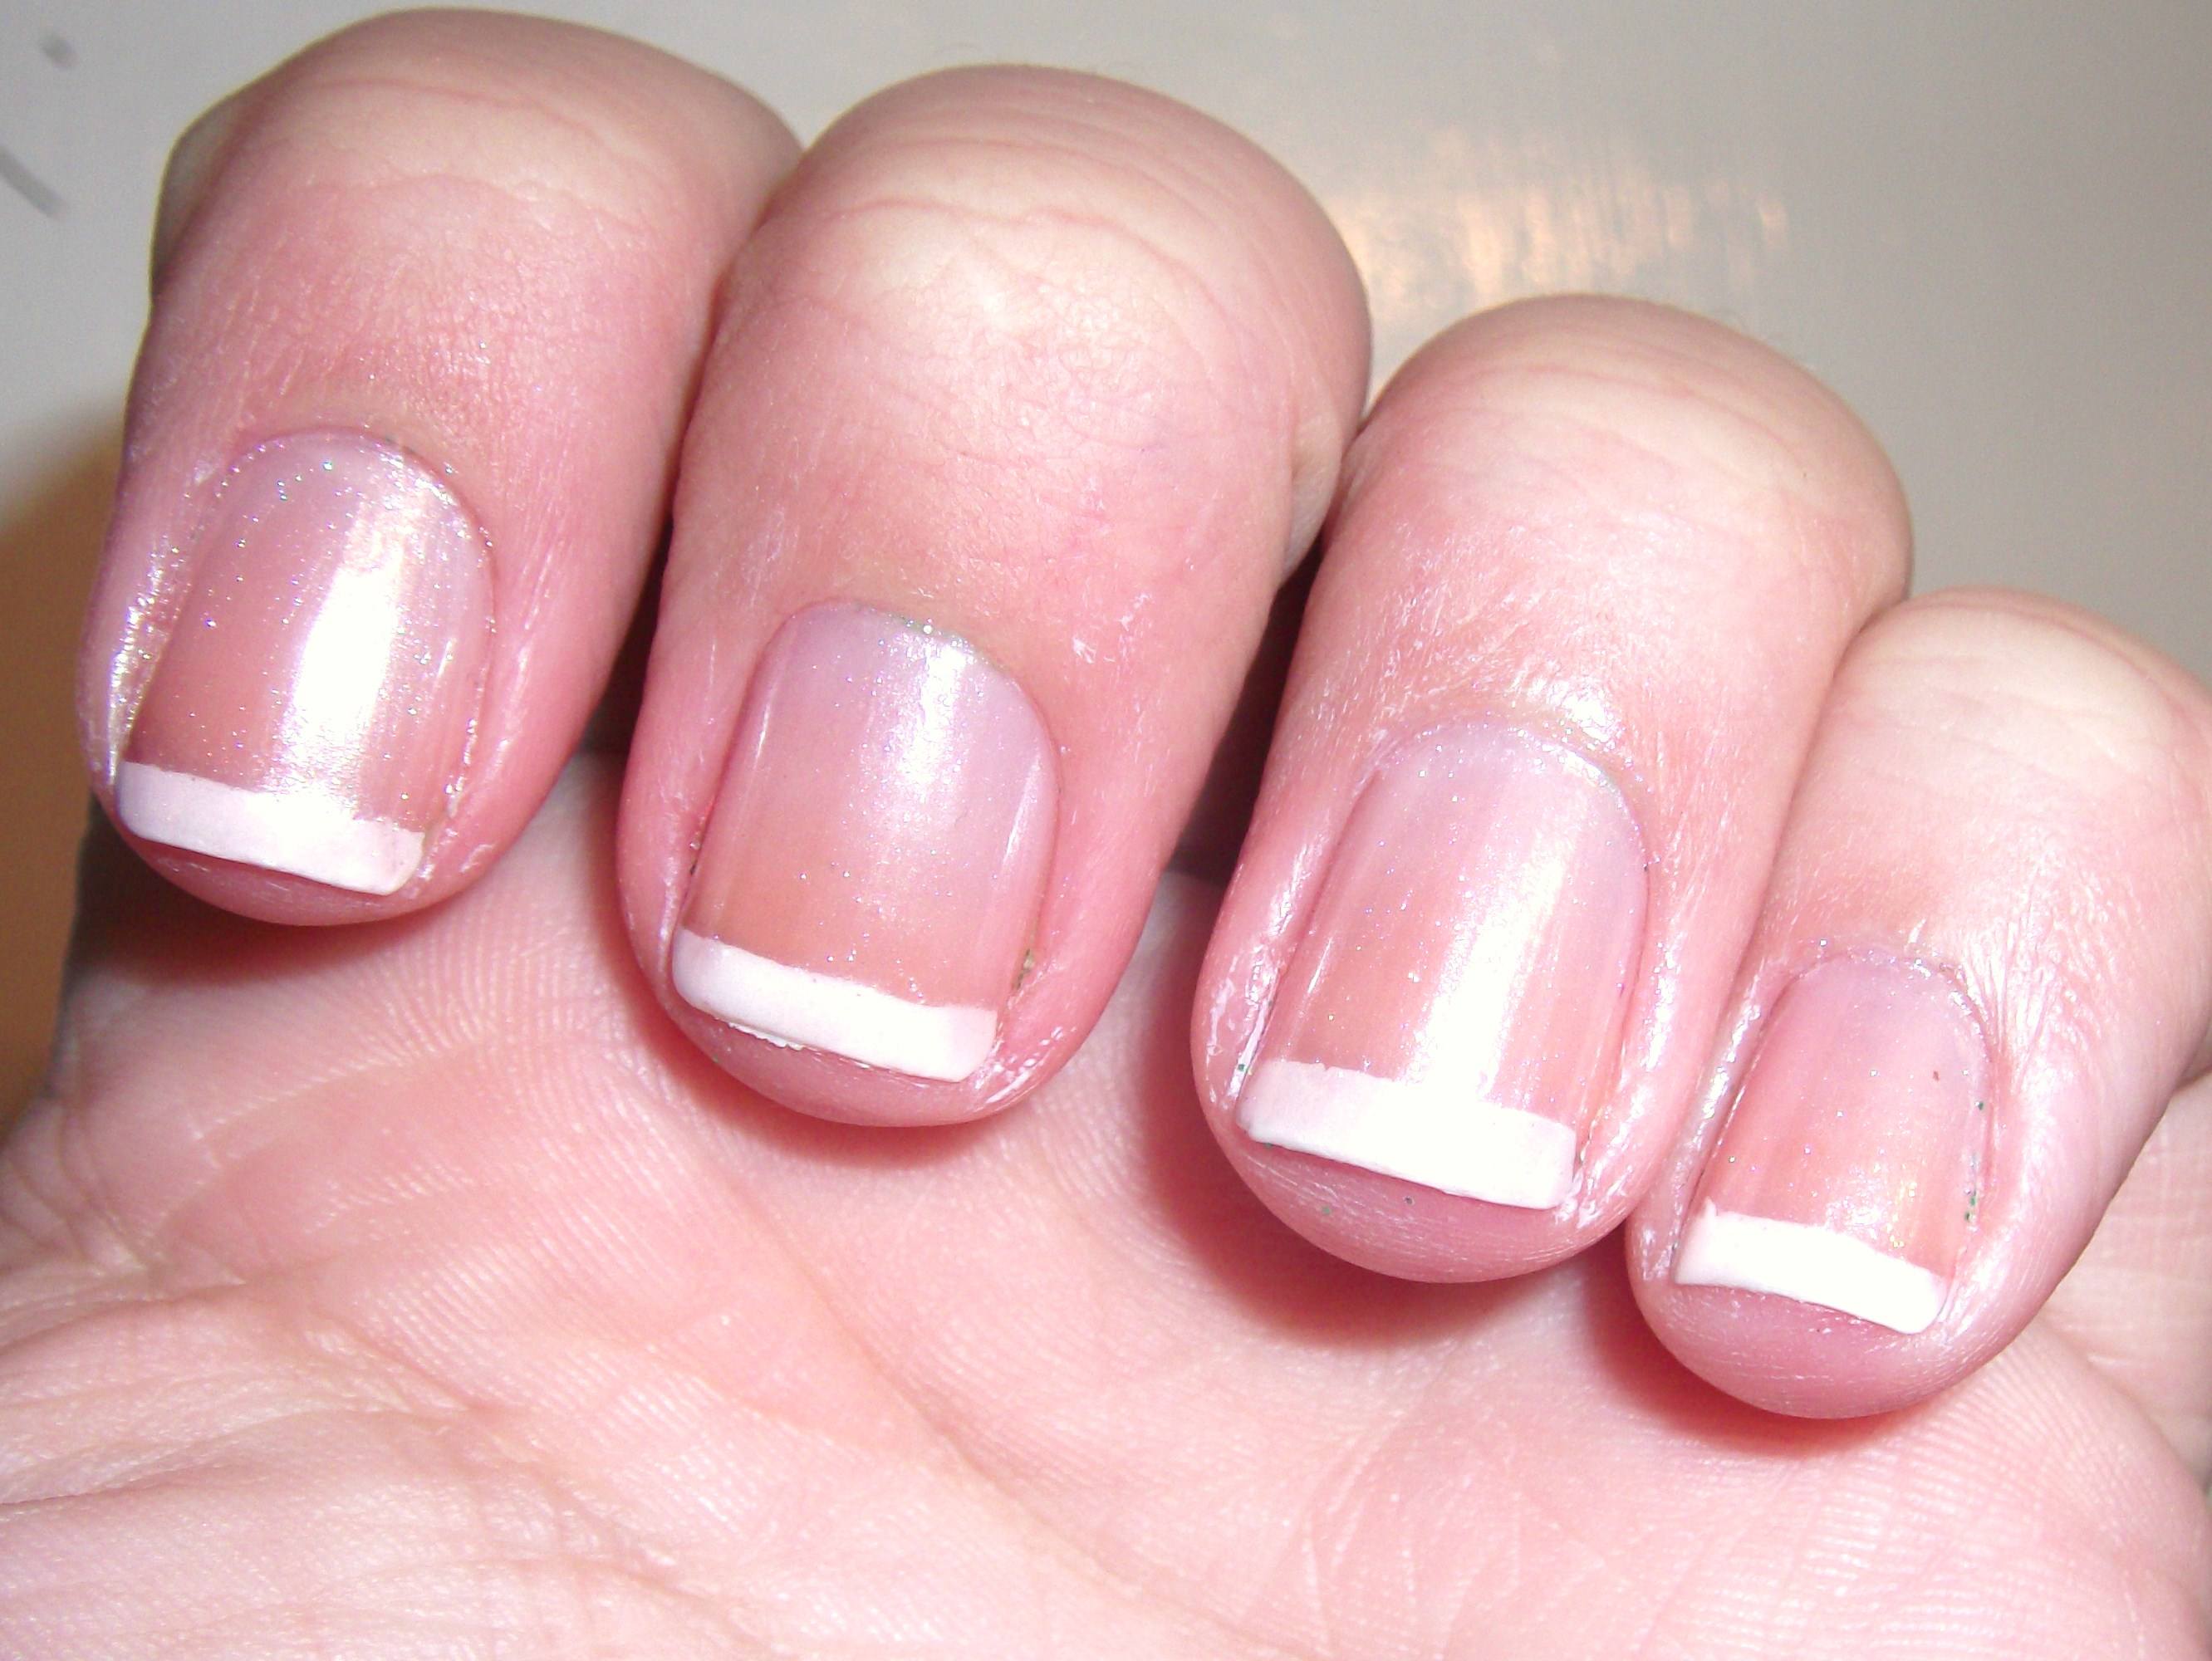 I Like This Look Okay But Would Really Prefer A Very Near Clear Pink Non Frosty Polish Is Little Too Pearly For Me